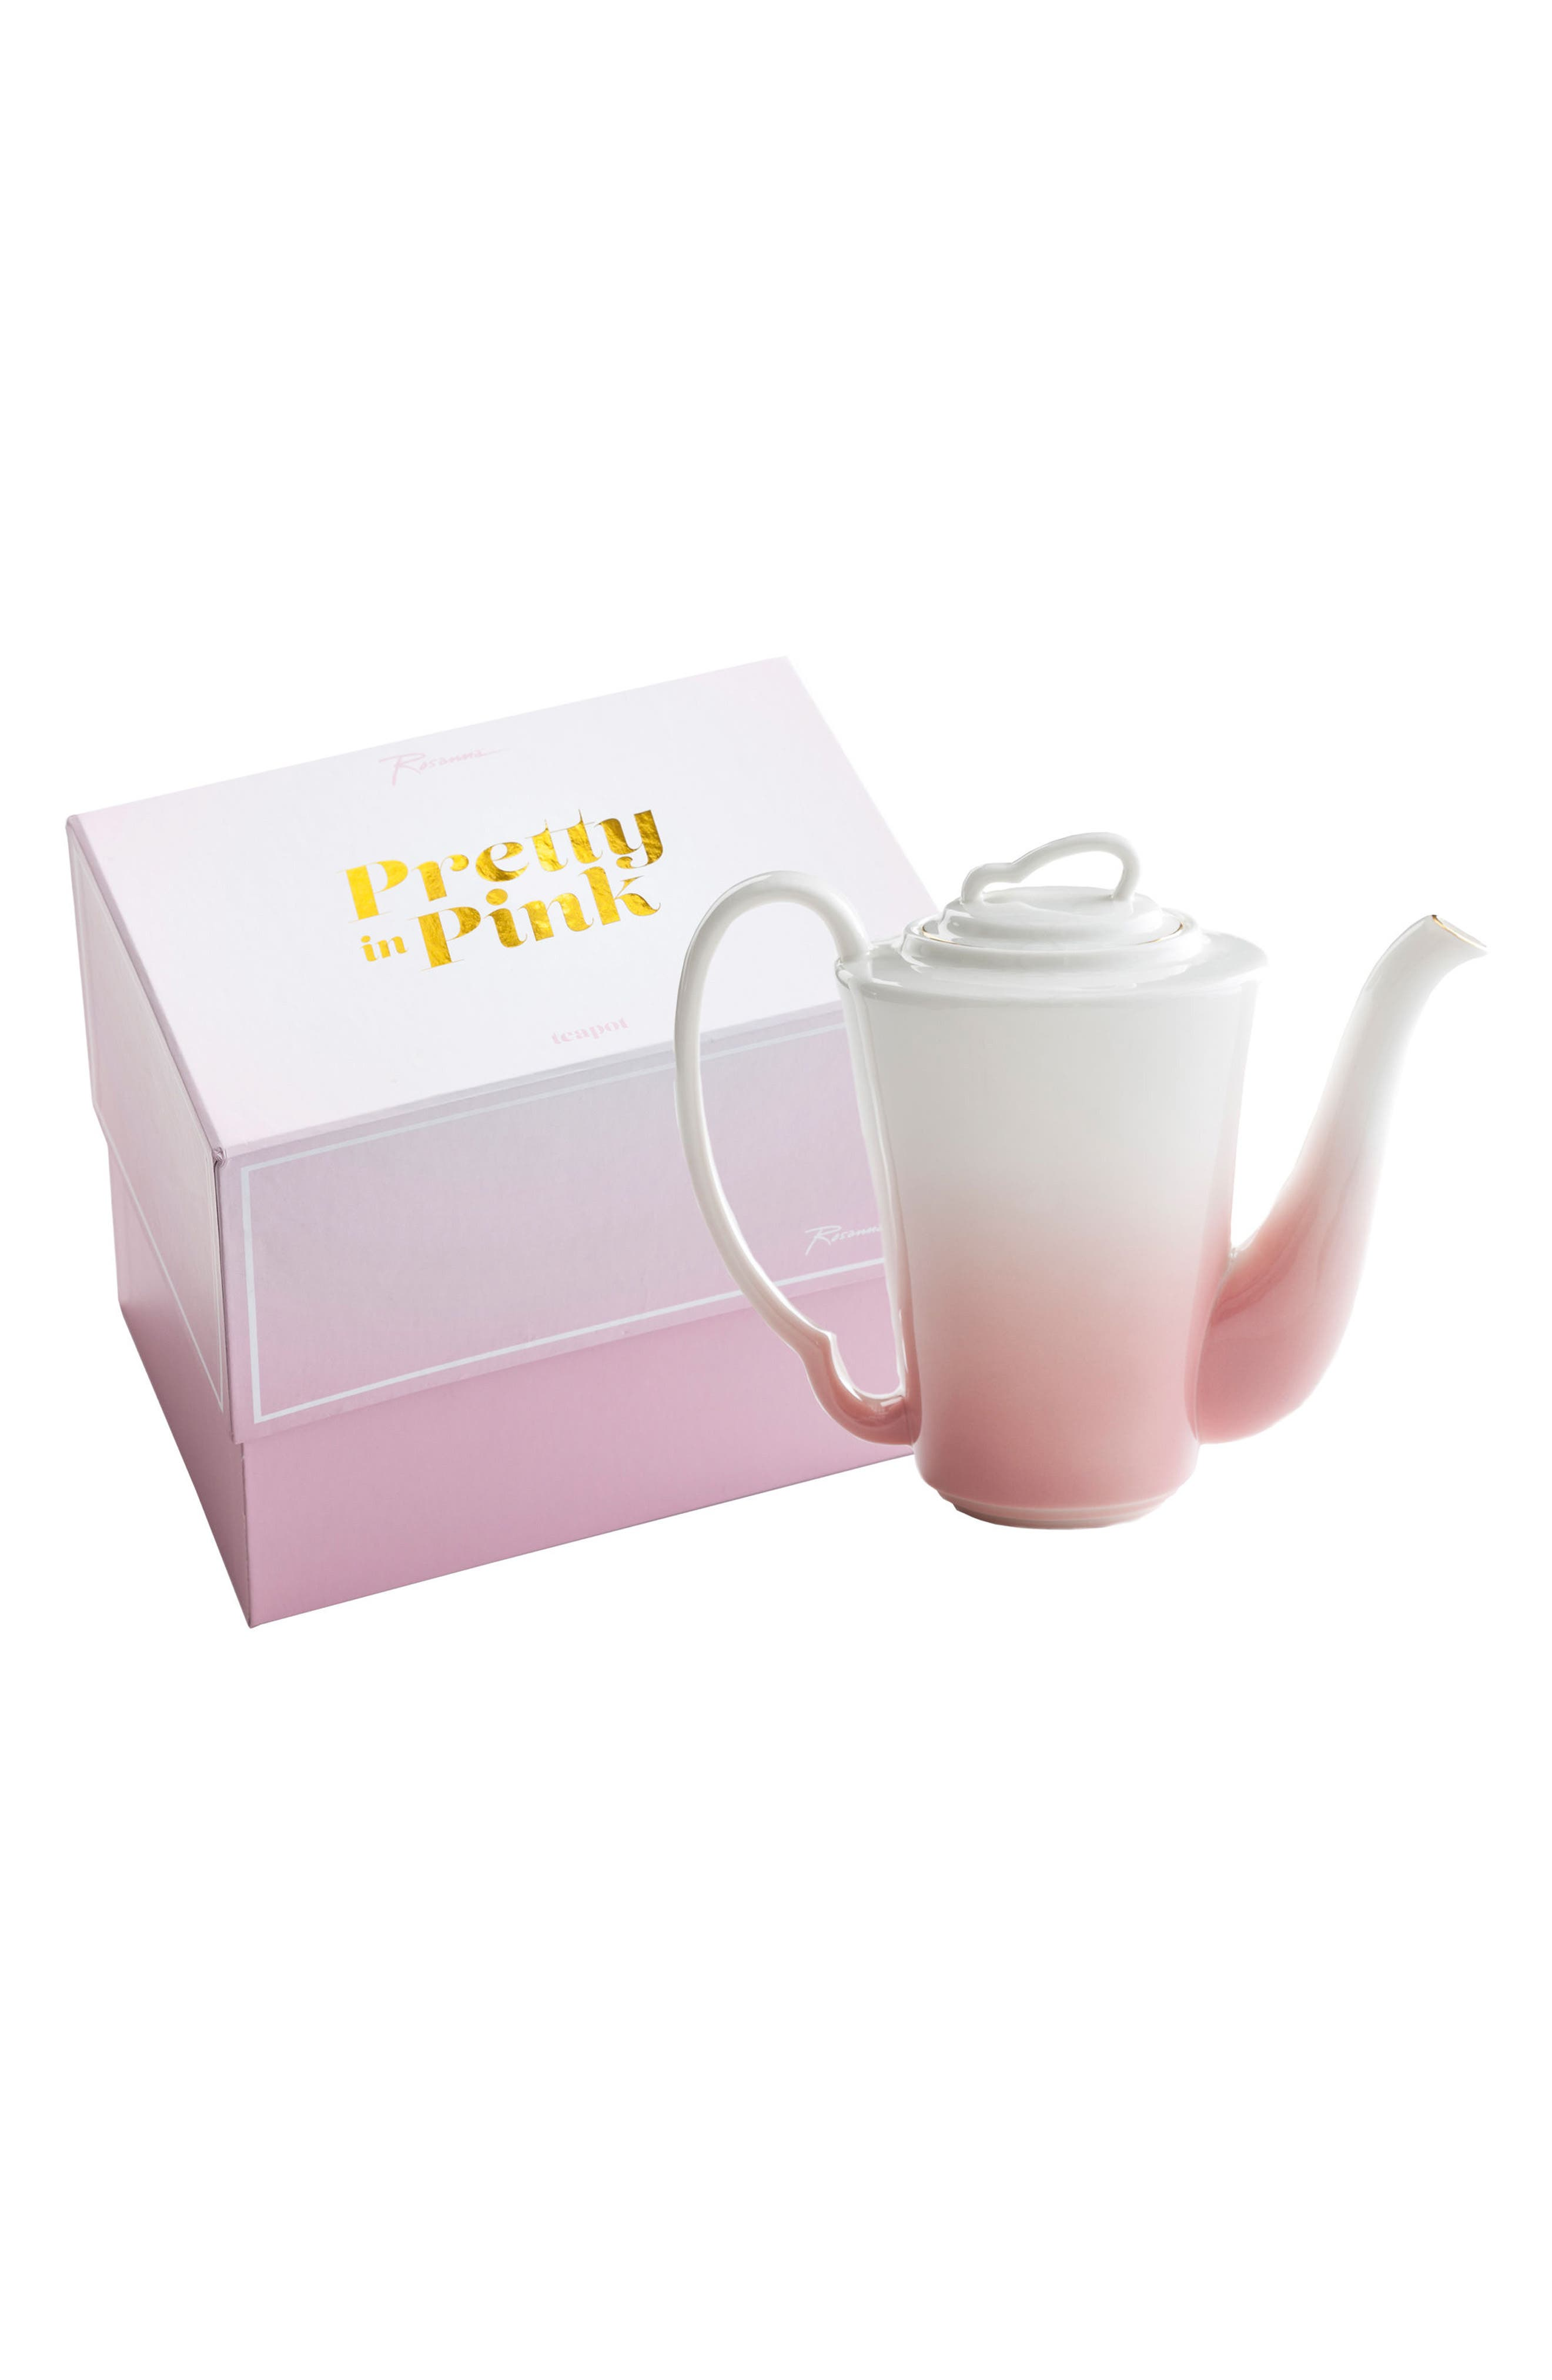 Pretty In Pink Porcelain Teapot,                         Main,                         color, Pink/ White/ Gold